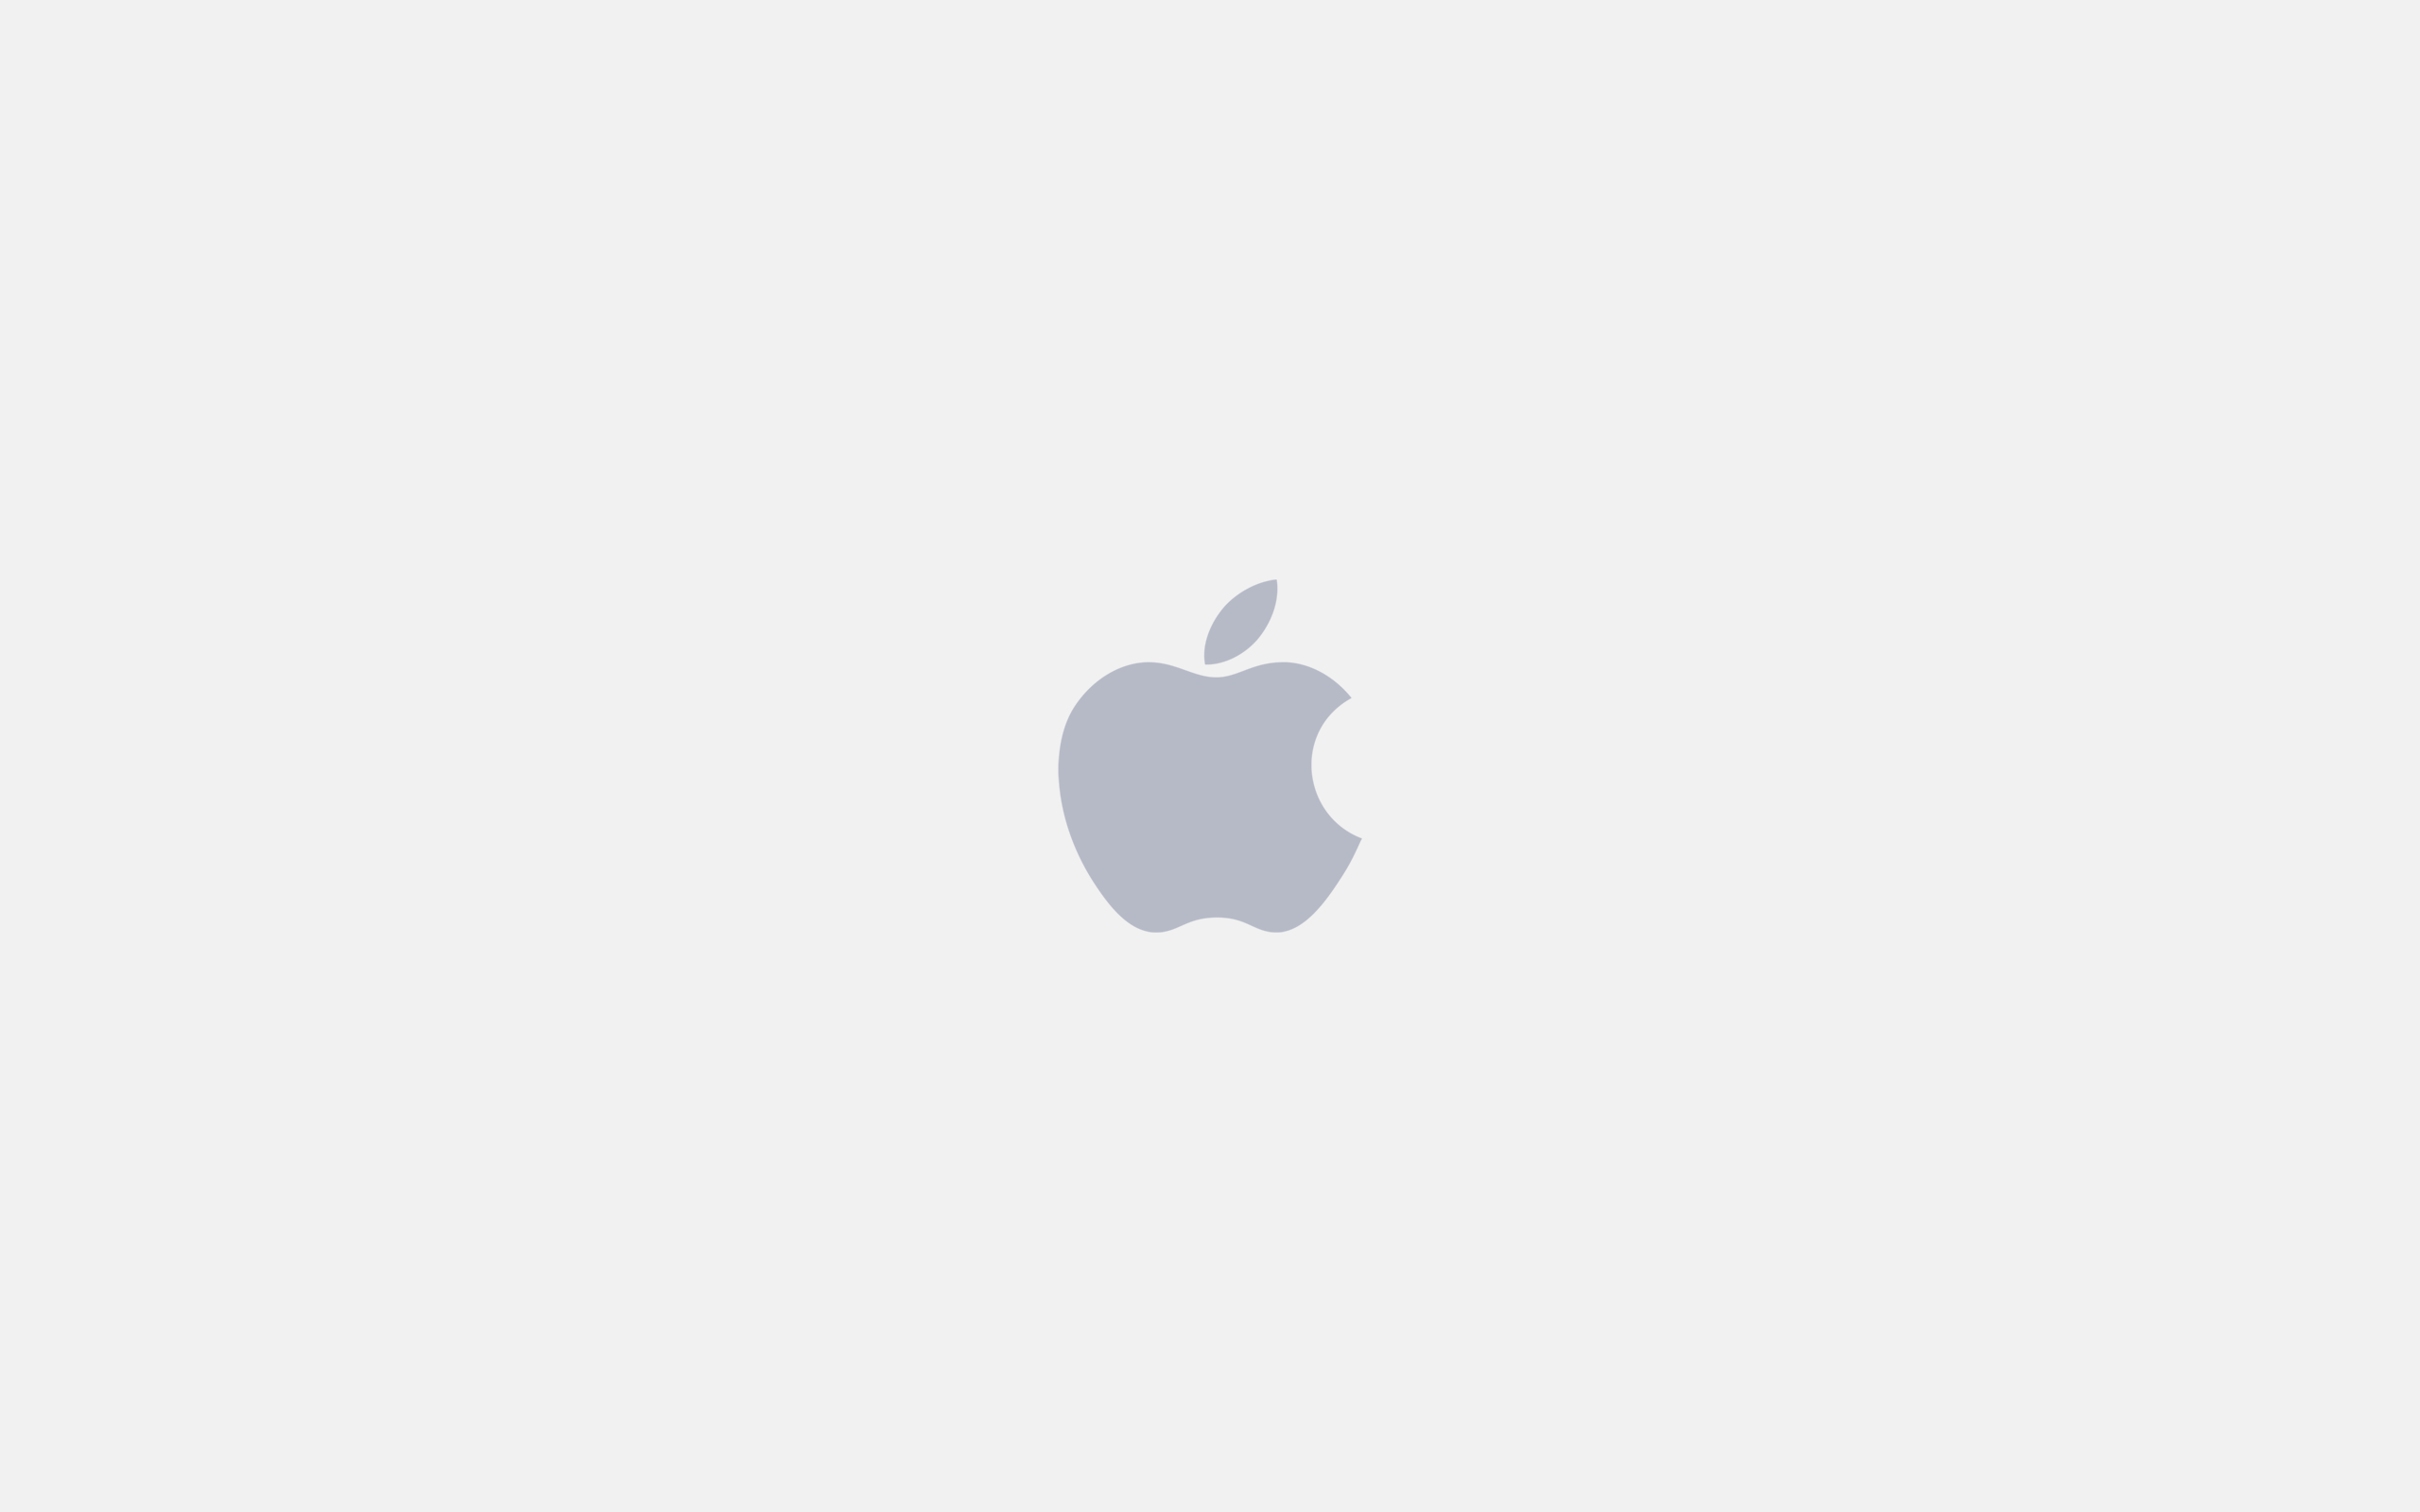 ... White Apple Logo Wallpaper